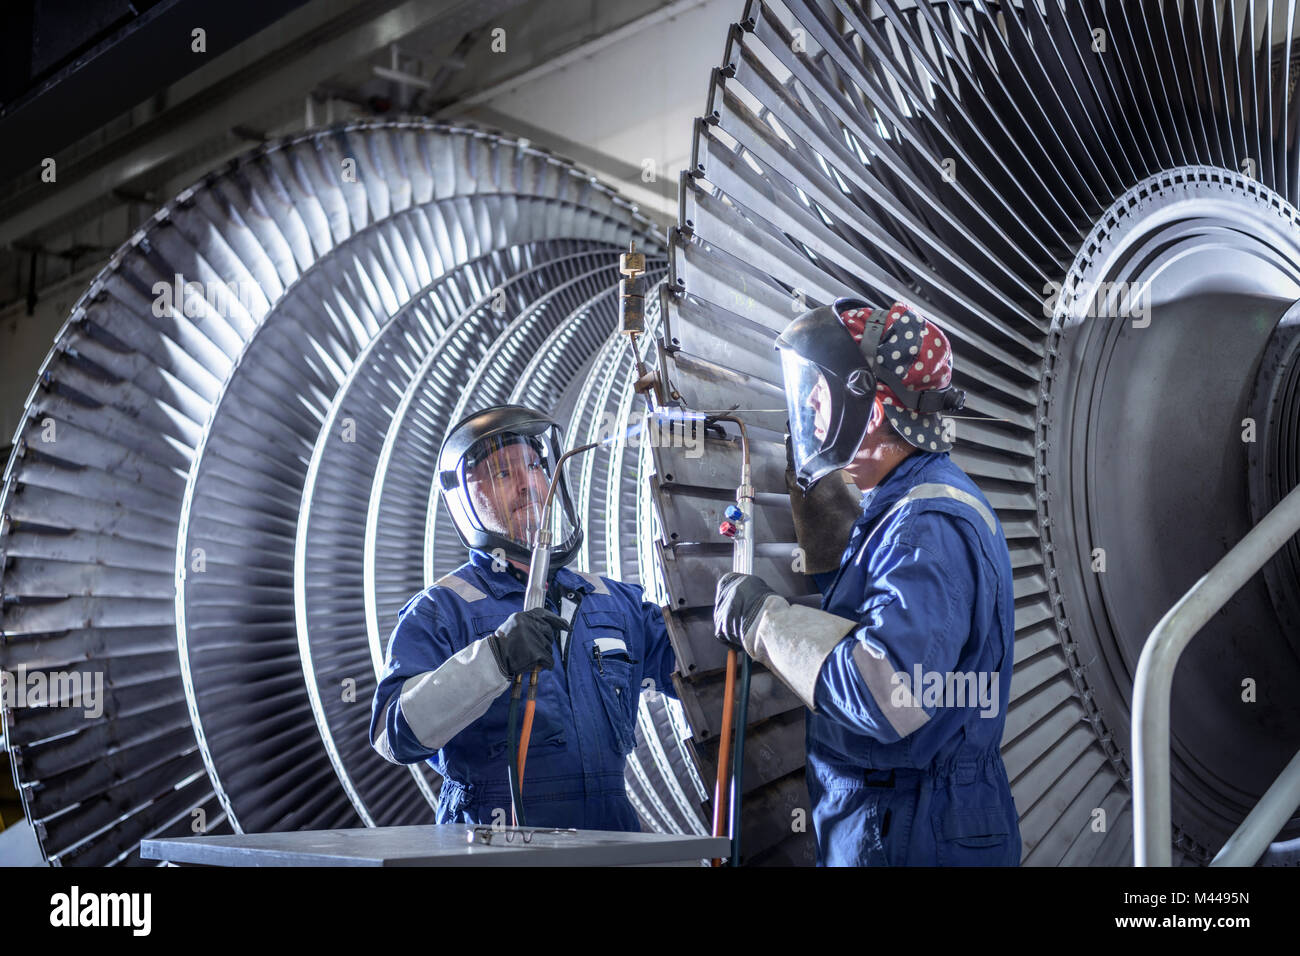 Engineers brazing ends of blades on low pressure steam turbine in turbine maintenance factory - Stock Image